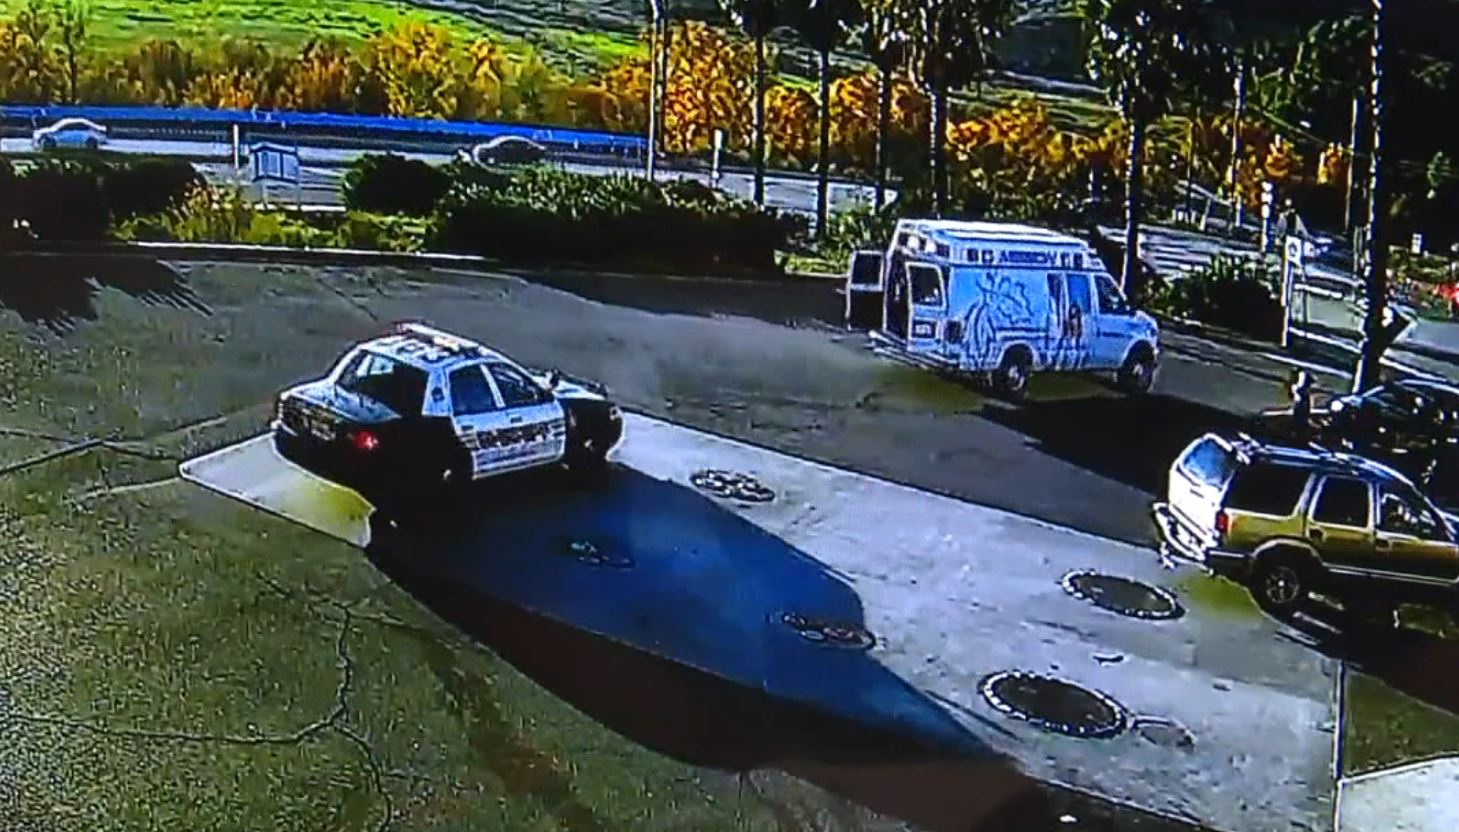 Security camera video shows a sheriff's department patrol car chasing a stolen ambulance Sunday Dec. 16, 2018 in a convenience store parking lot.